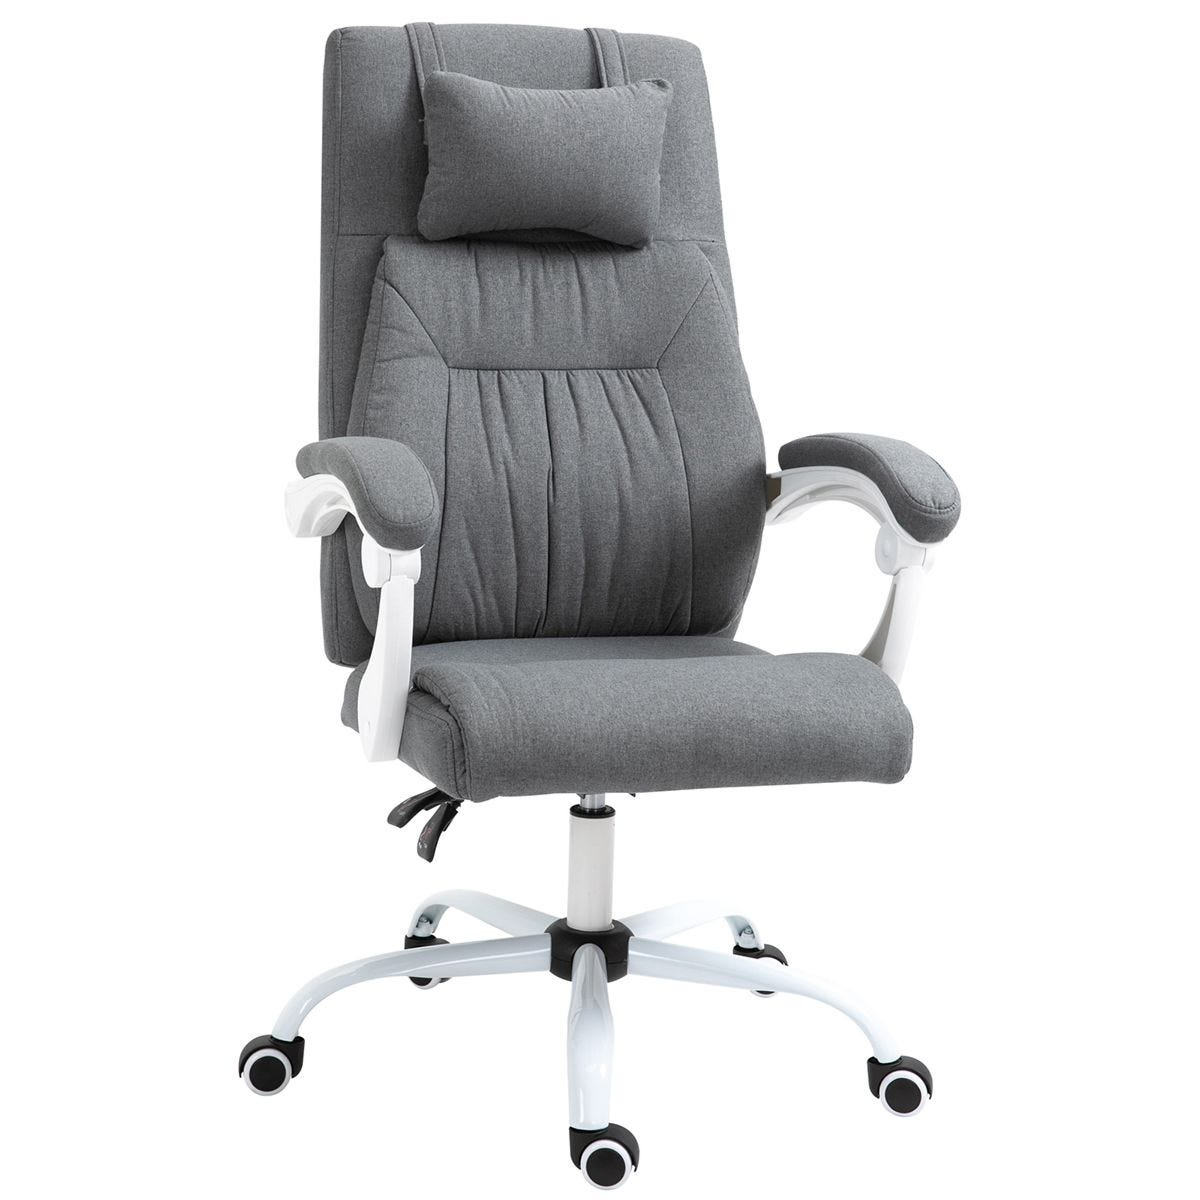 Solstice Feebee Linen Office Chair with Vibrating Pillow - Grey